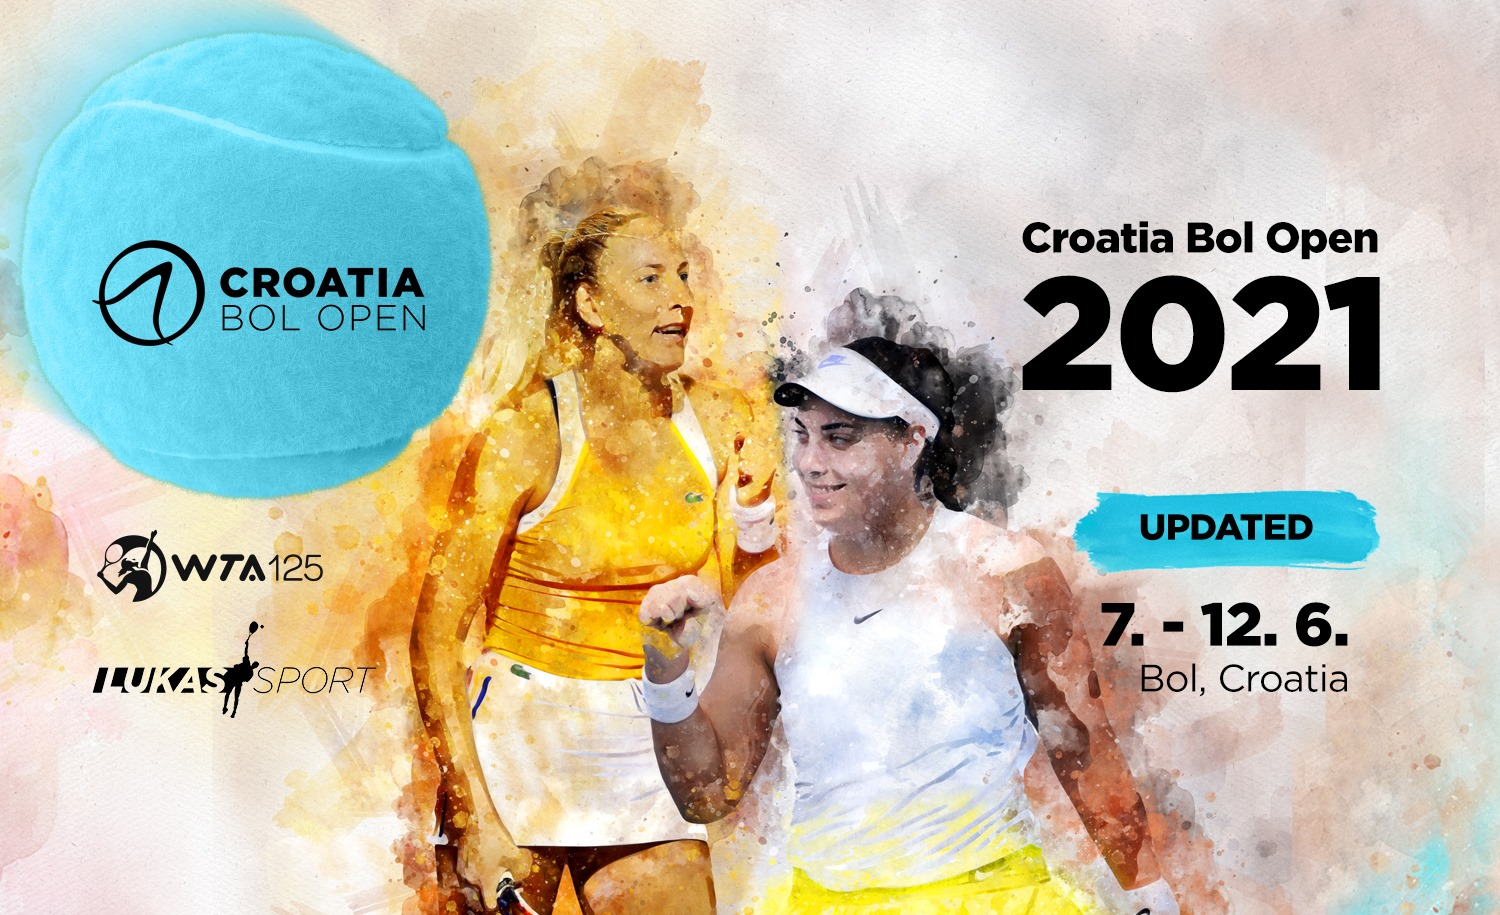 Bol welcomes tennis players for the 15thedition ofCroatia Bol Open